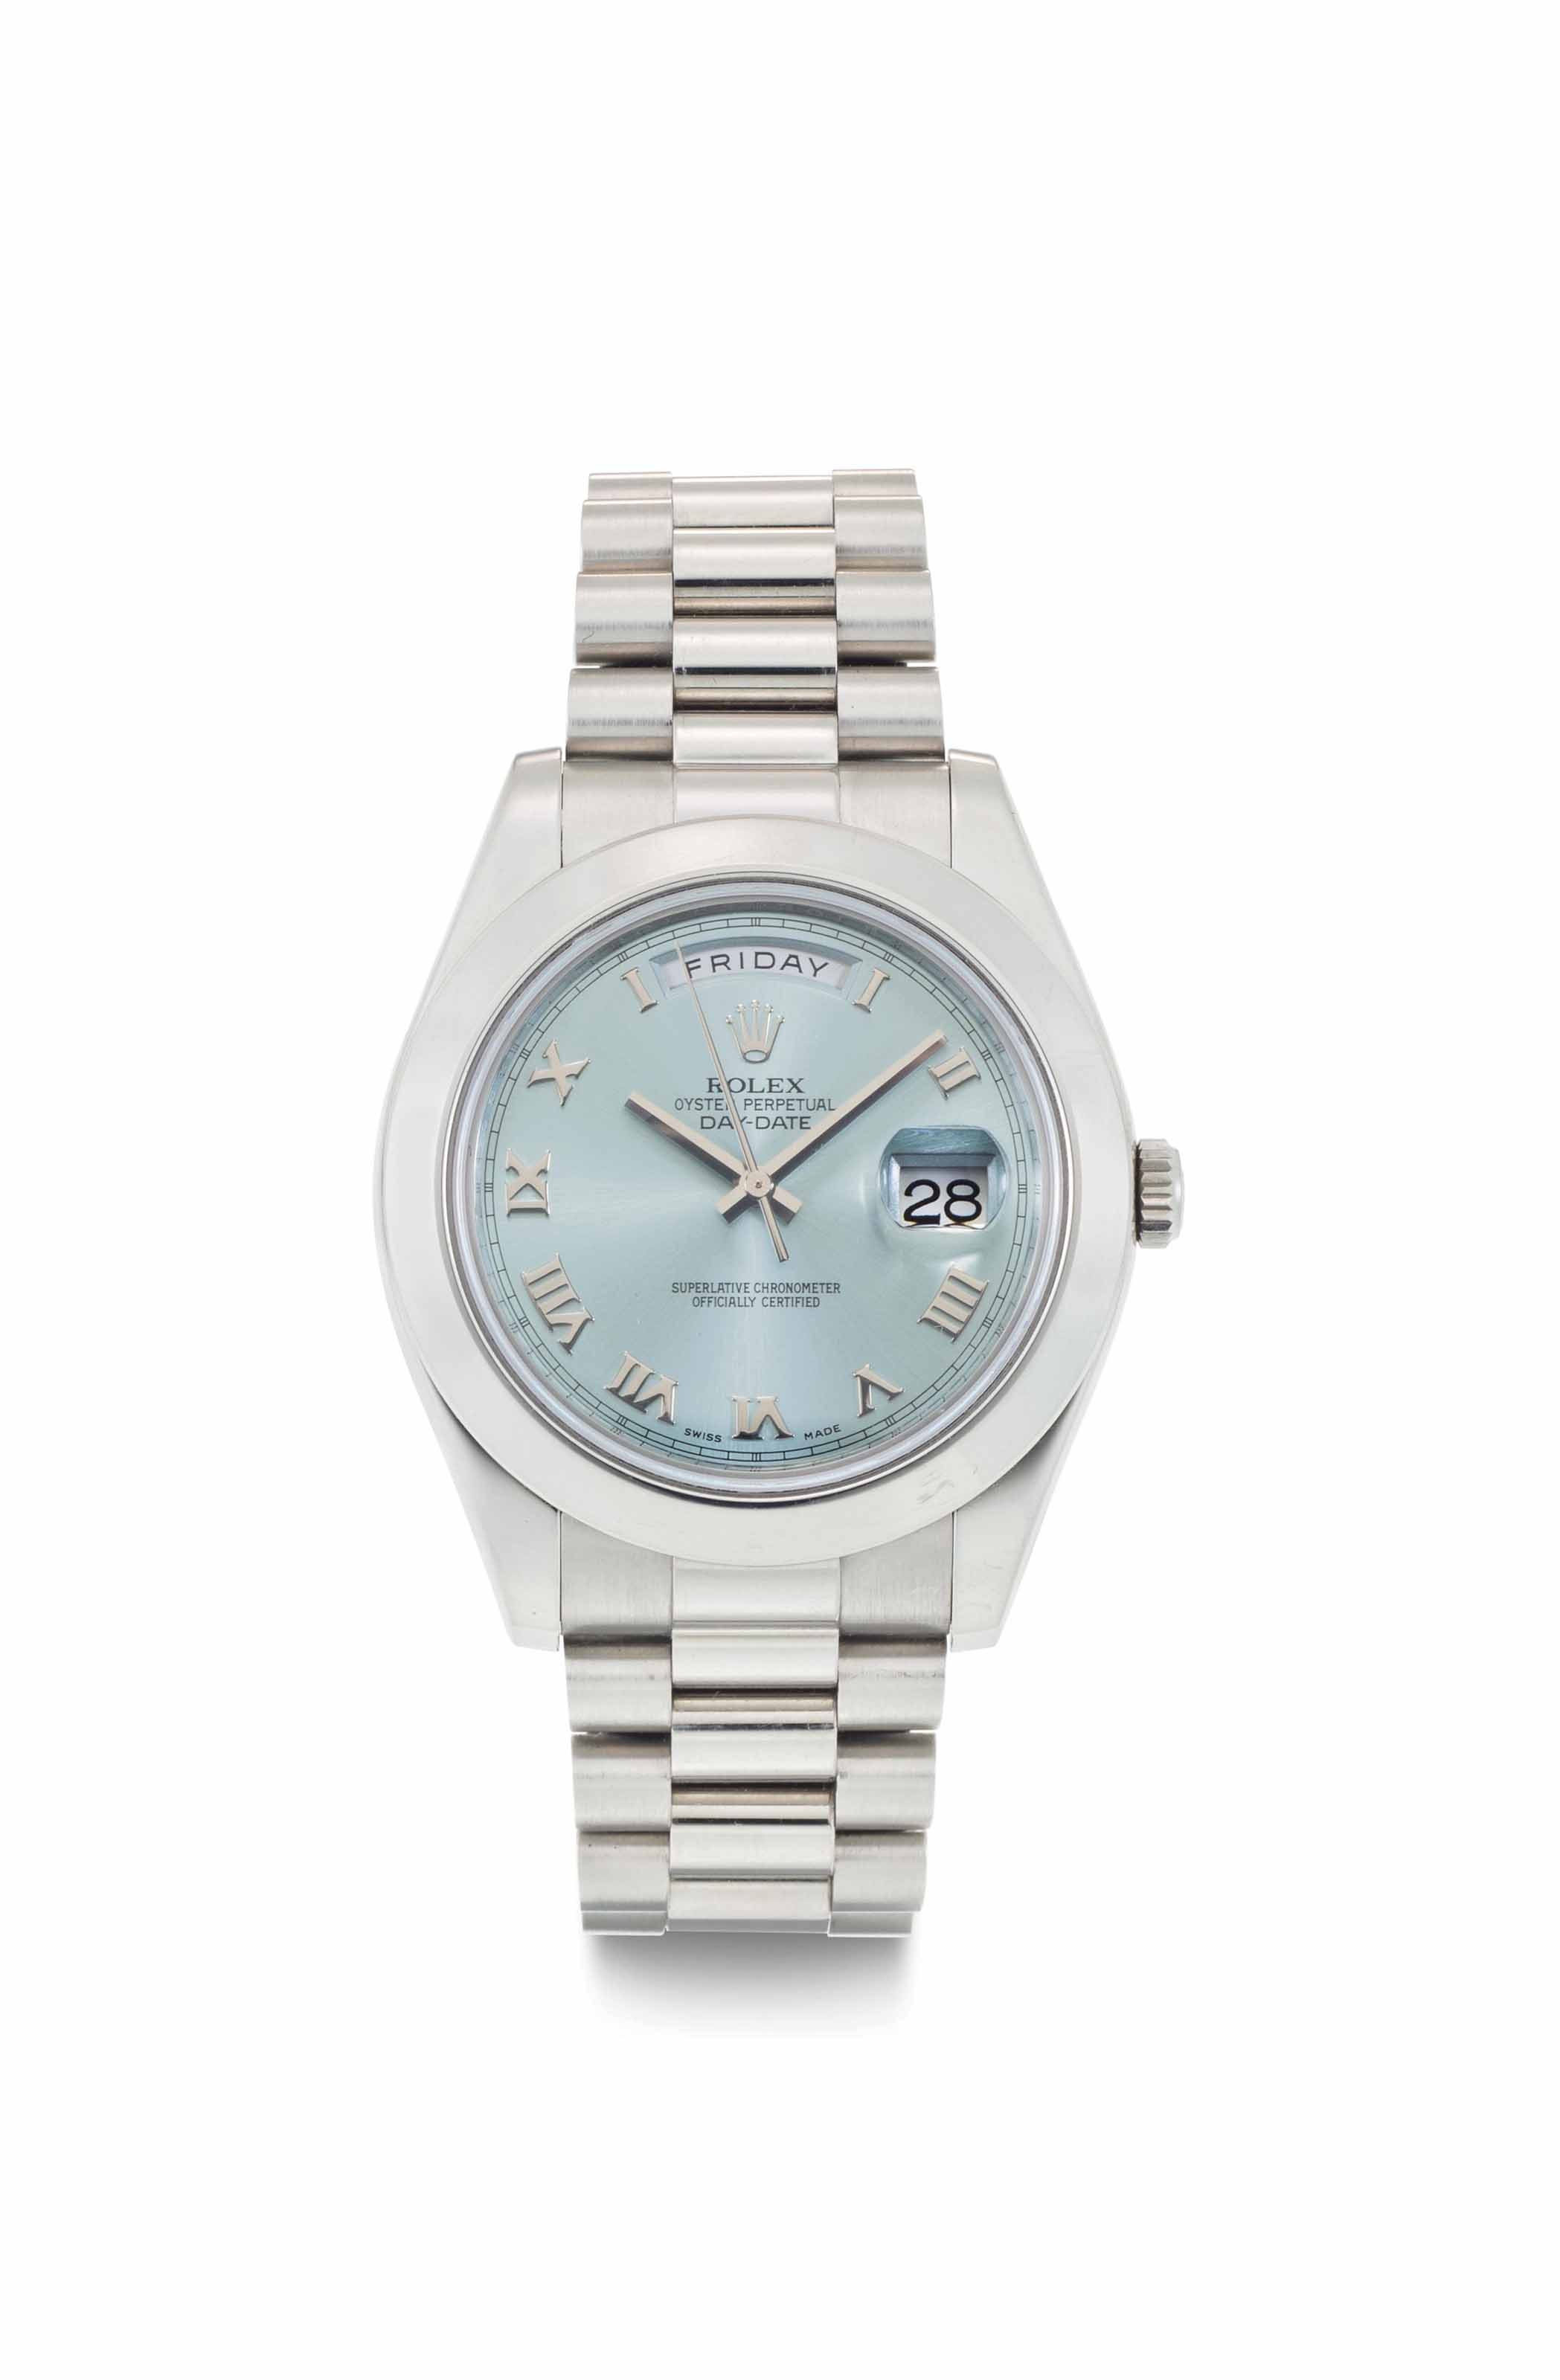 Rolex. A Fine and Heavy Platin